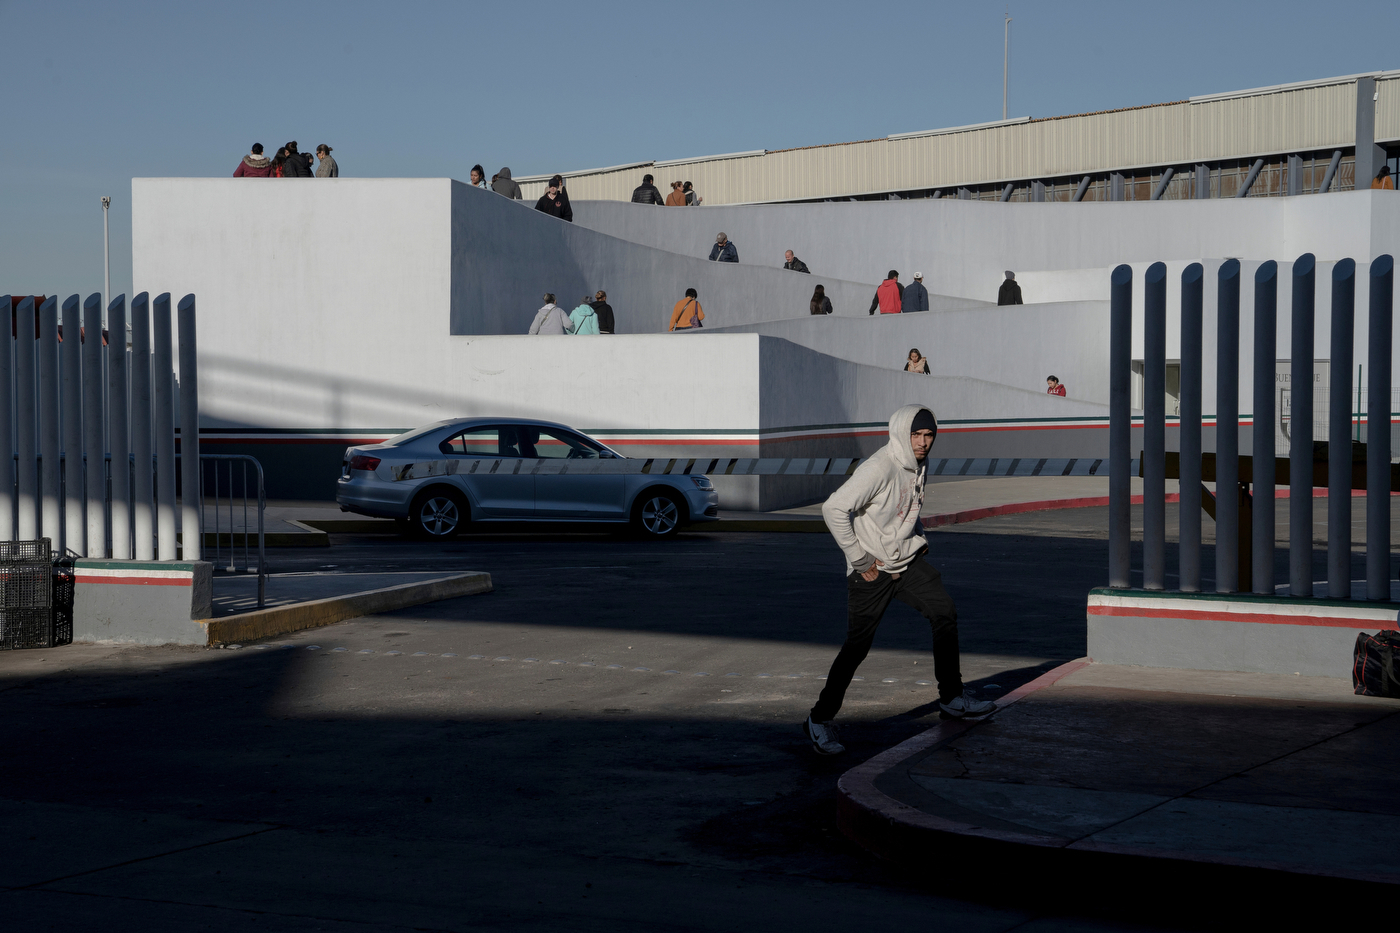 A migrant whose numbers was called waits to board a van that will bring him and his family to US immigration authorities where they will present their cases for asylum at the Chaparral pedestrian crossing on the US-Mexican border in Tijuana, Mexico on December 8, 2018.  Migrants return daily to the plaza by the crossing to see if their number is called from the list 'La Lista', a self-organized, migrant-run system that determines who gets to present their cases to US immigration authorities each day. Photo by Kitra Cahana / MAPS